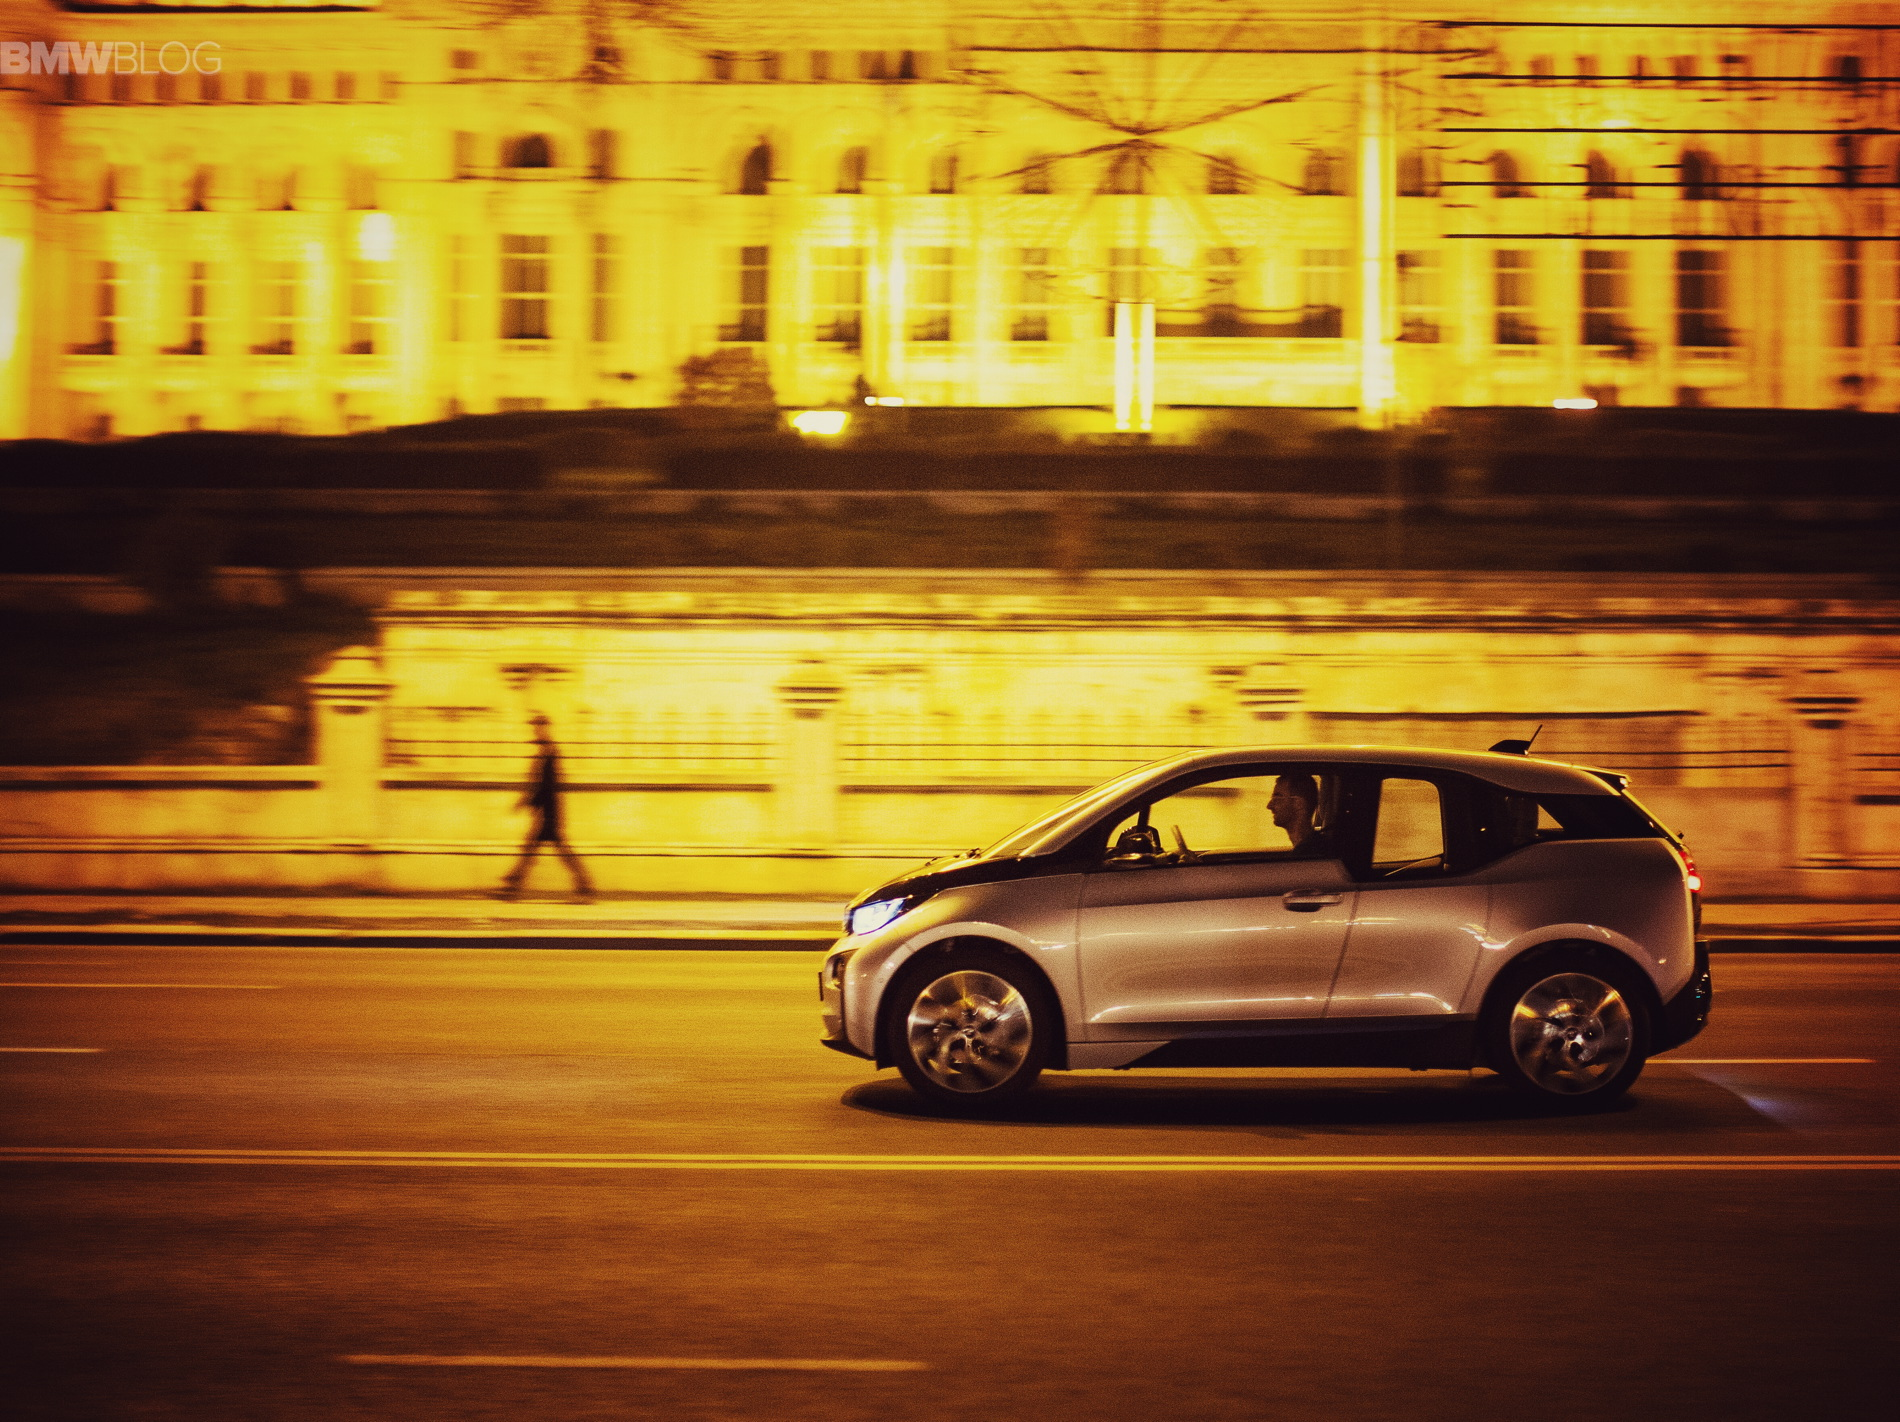 BMW i3 i8 photoshoot bucharest images 1